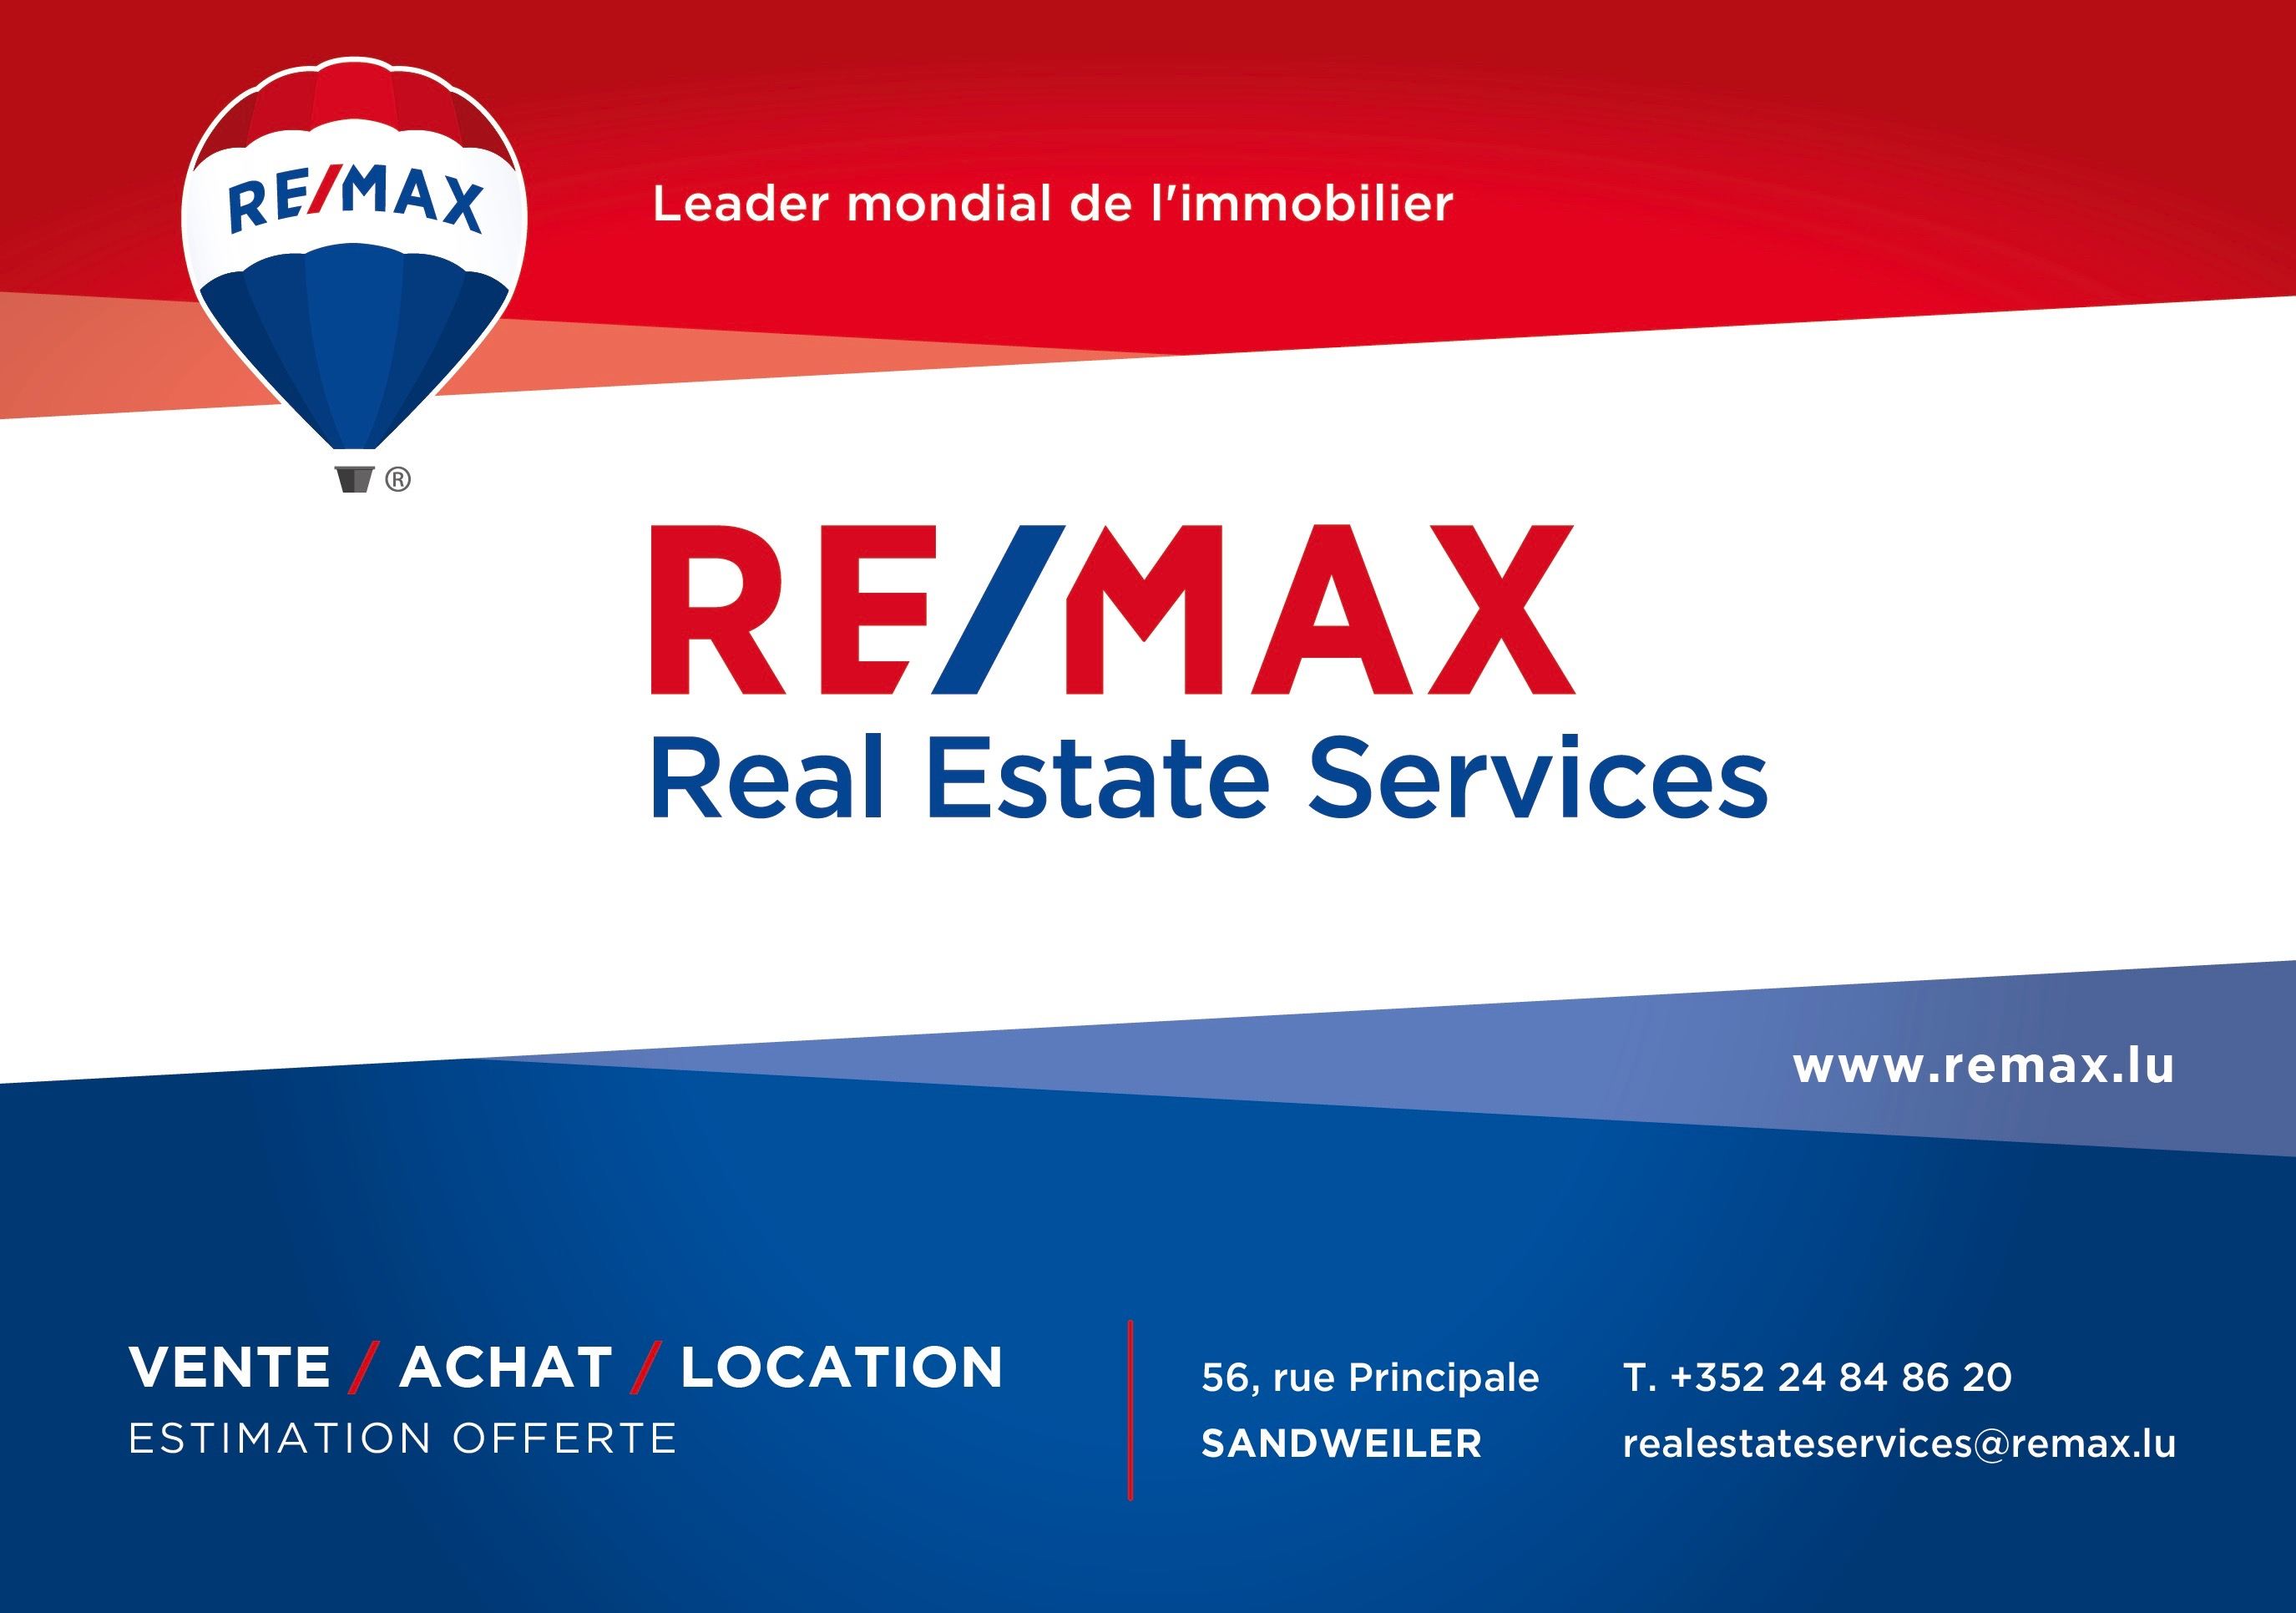 RE/MAX Real Estate Services = PIKES SPONSOR